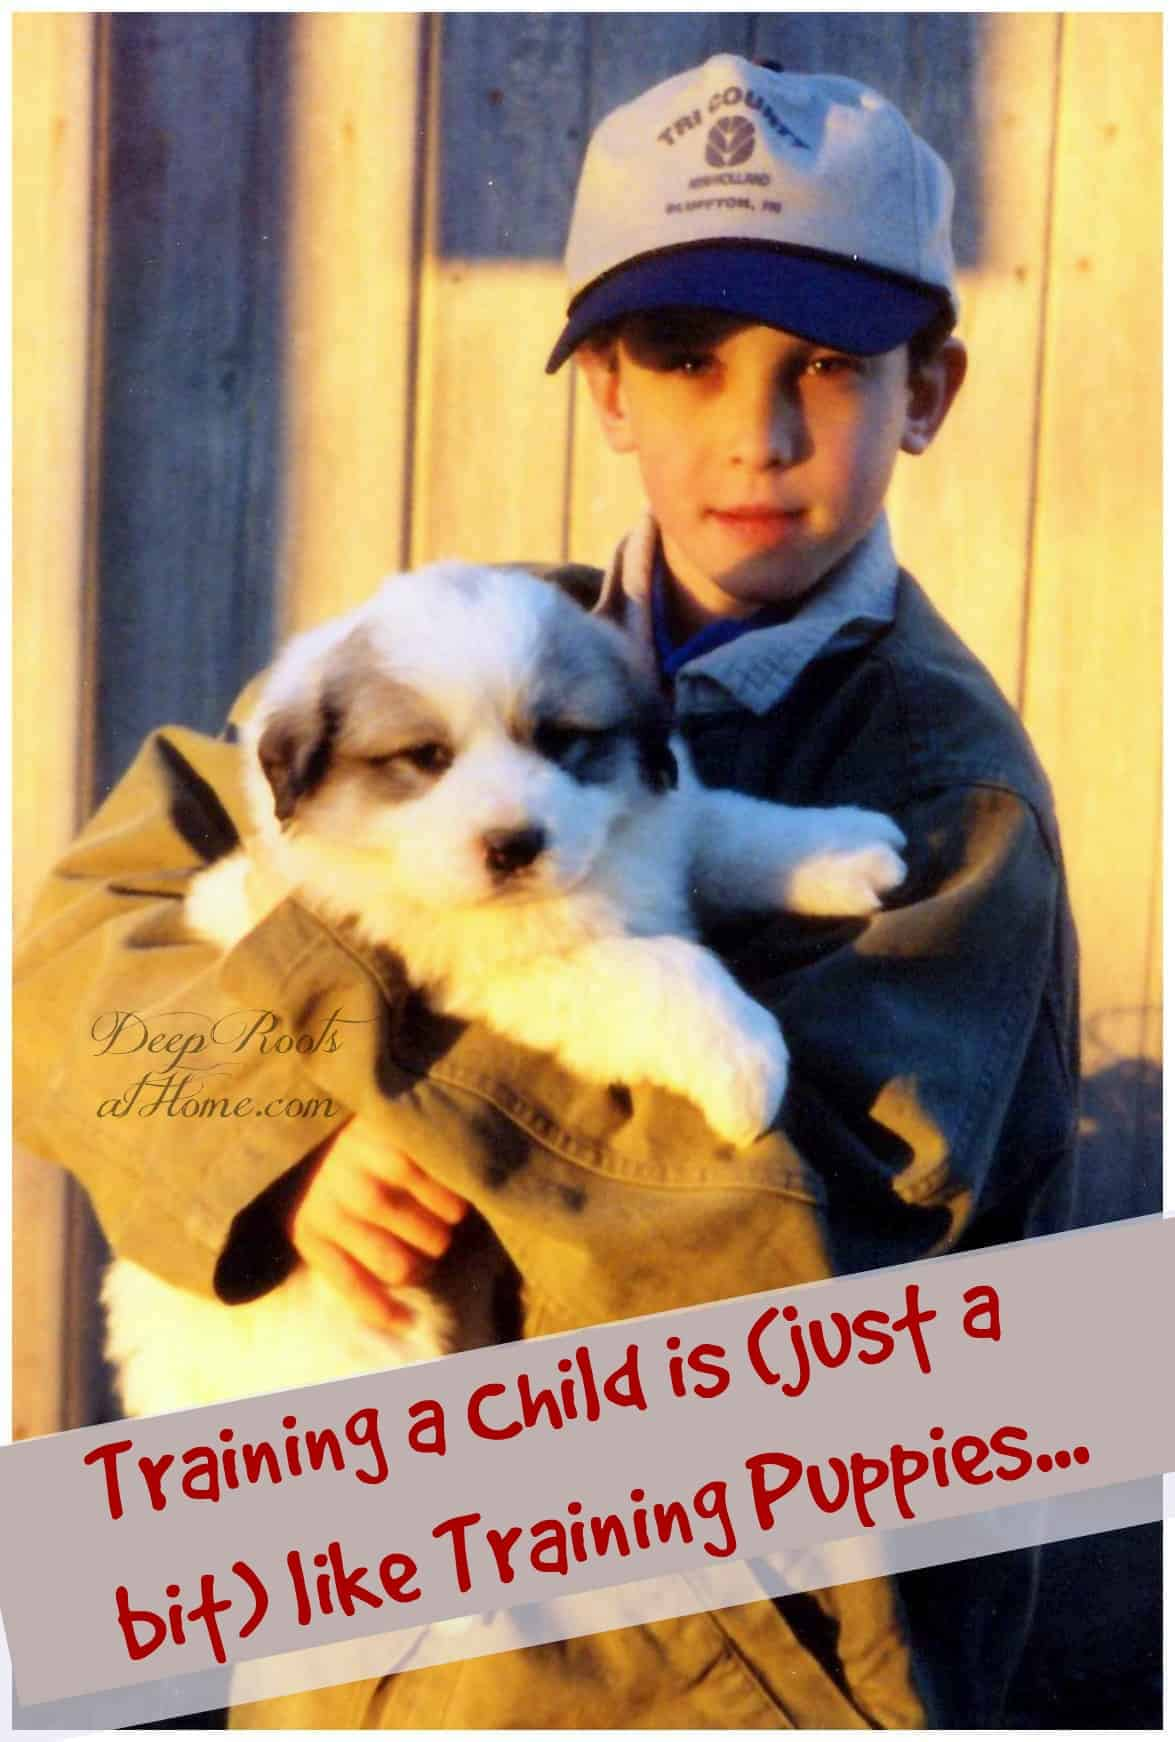 Training a Child is (just a bit) like Training Puppies. Photo of a responsible 8 year old boy holding a little puppy.